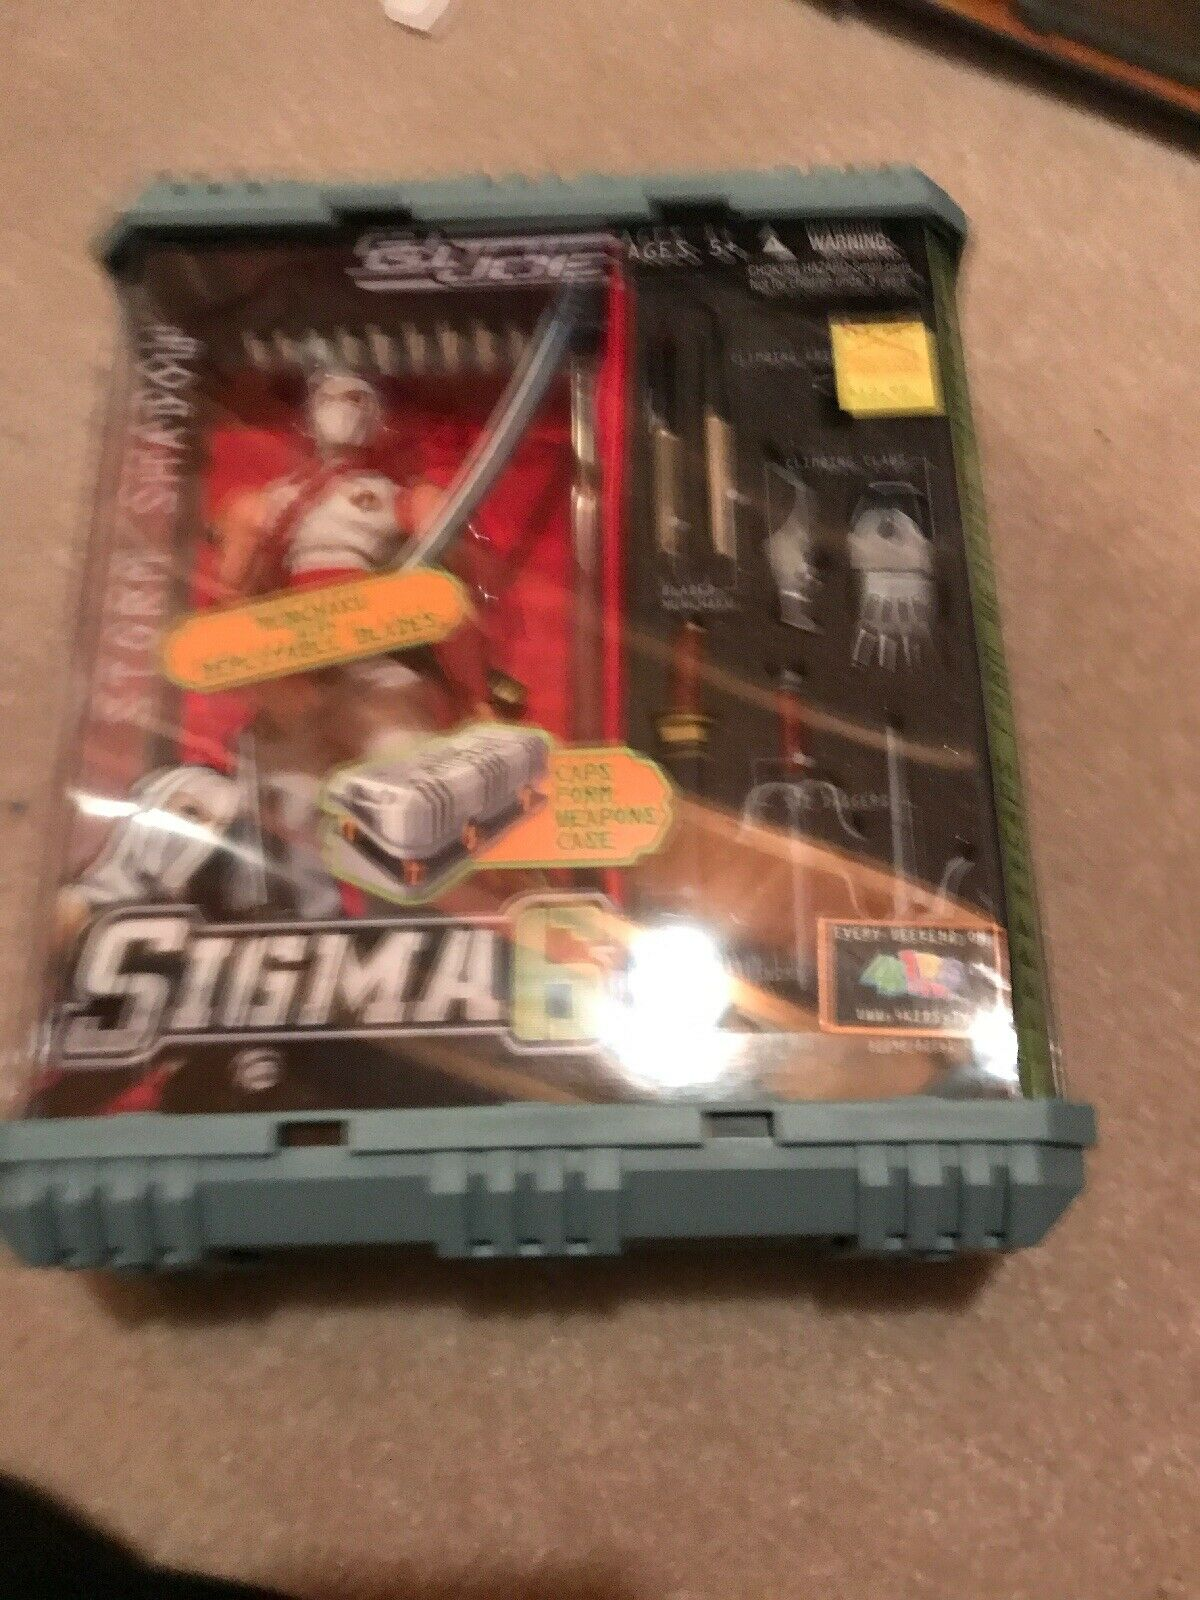 Go Joe Sigma 6 Storm Shadow Munchaku With Deploysble Blades